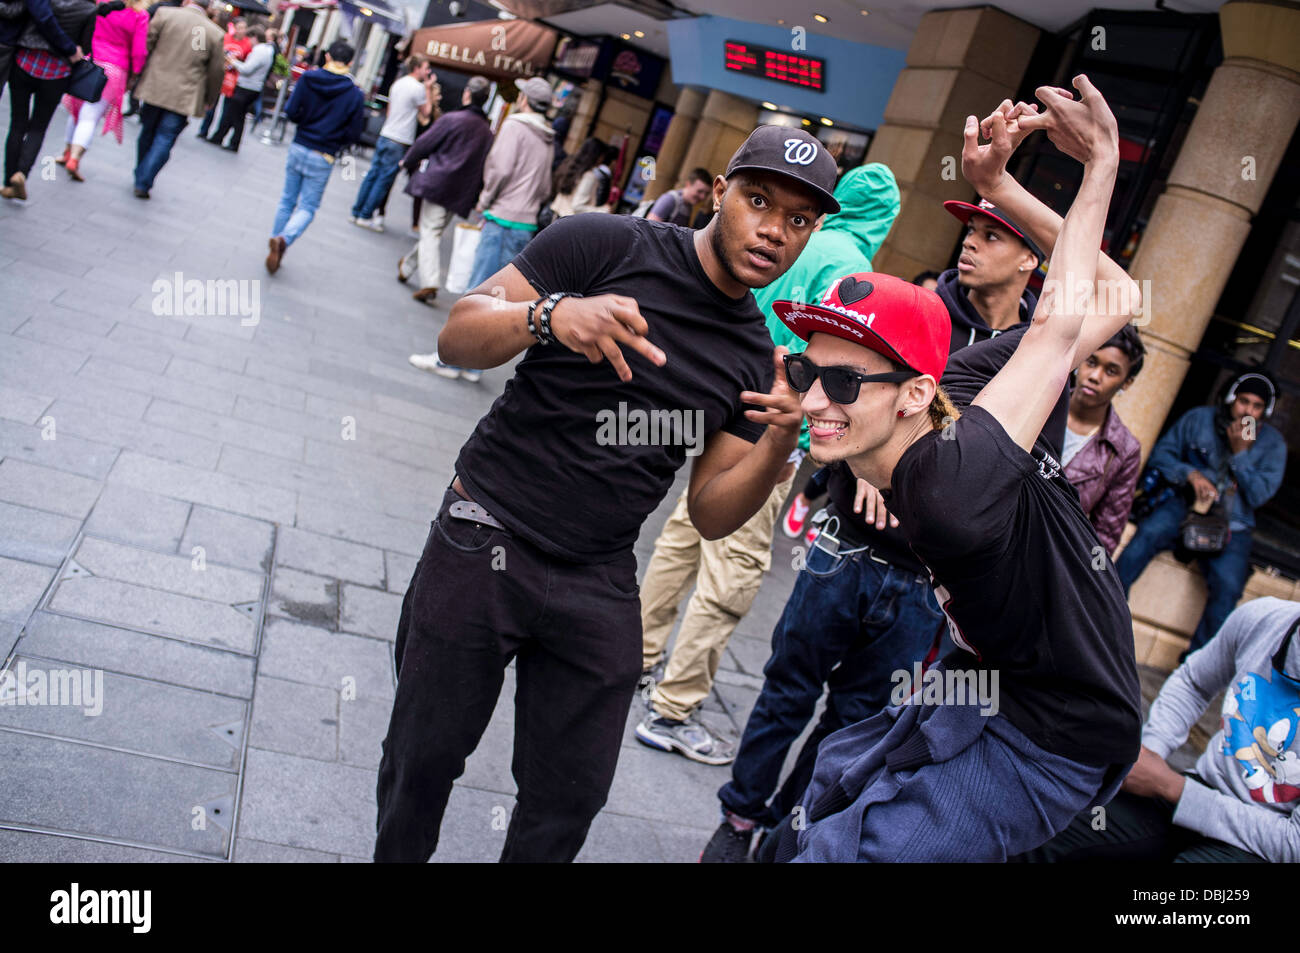 Young people in Leicester Square, London, United Kingdom - Stock Image